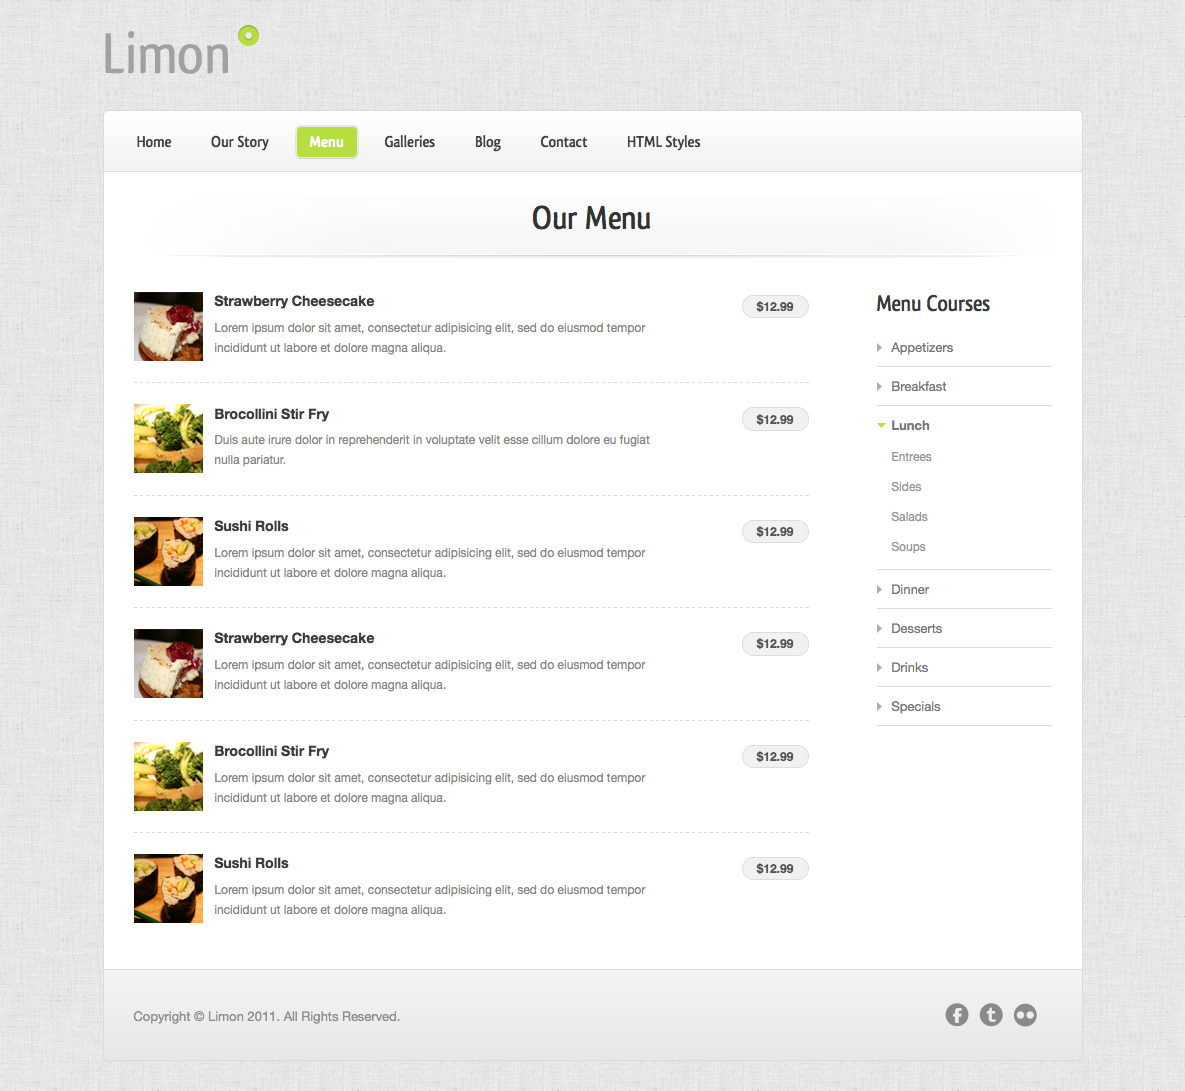 Limon - A Restaurant and Spa Theme - Menu - Accordion-style menu with images (a variation of this without images is also included).